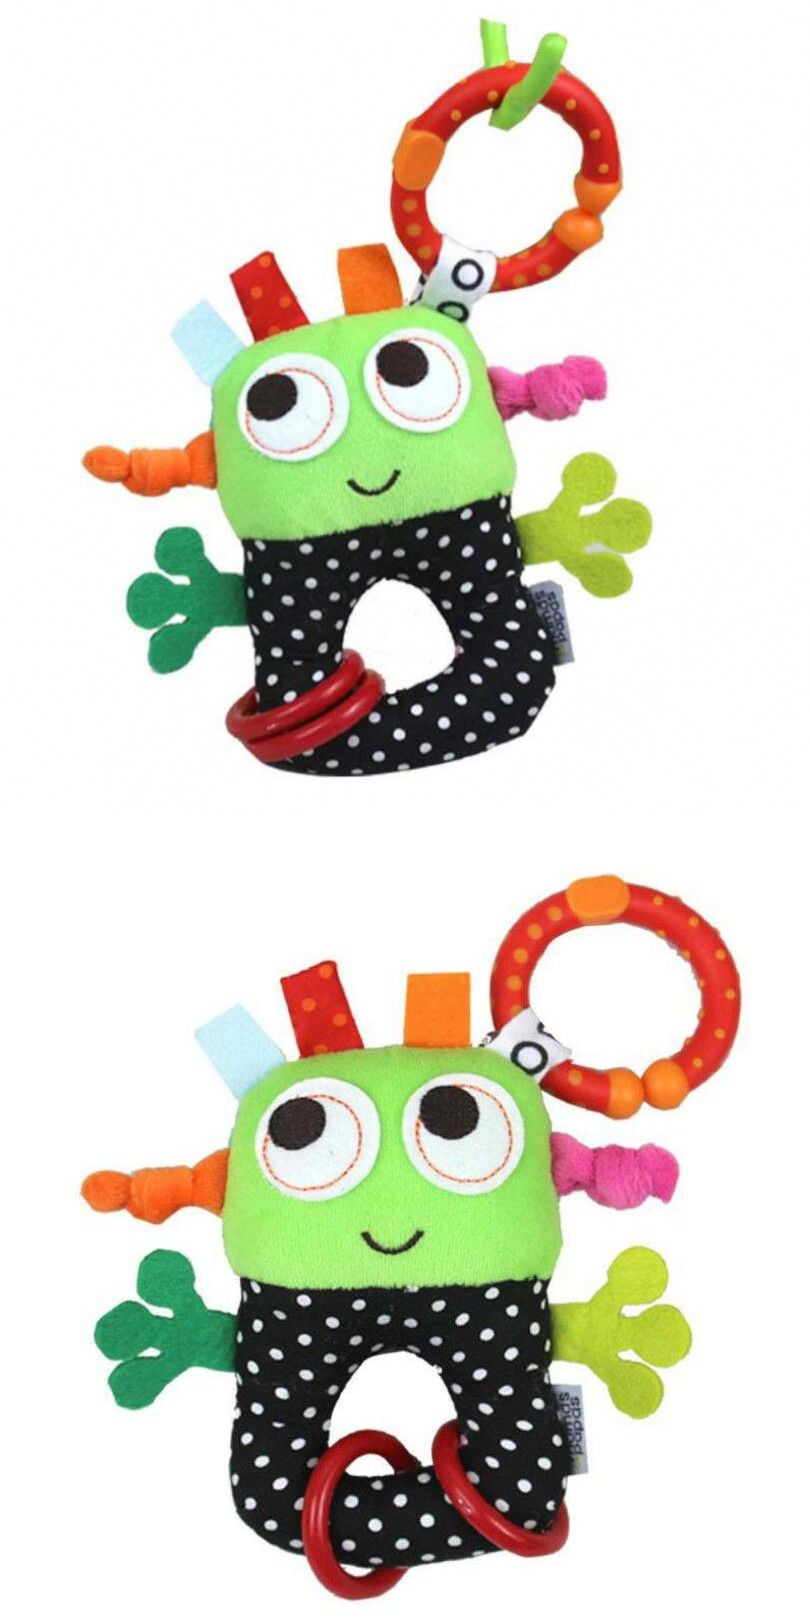 Toys images clip art  Baby Toy Soft Plush Doll Baby Crib robot Bed Hanging Toy Teether